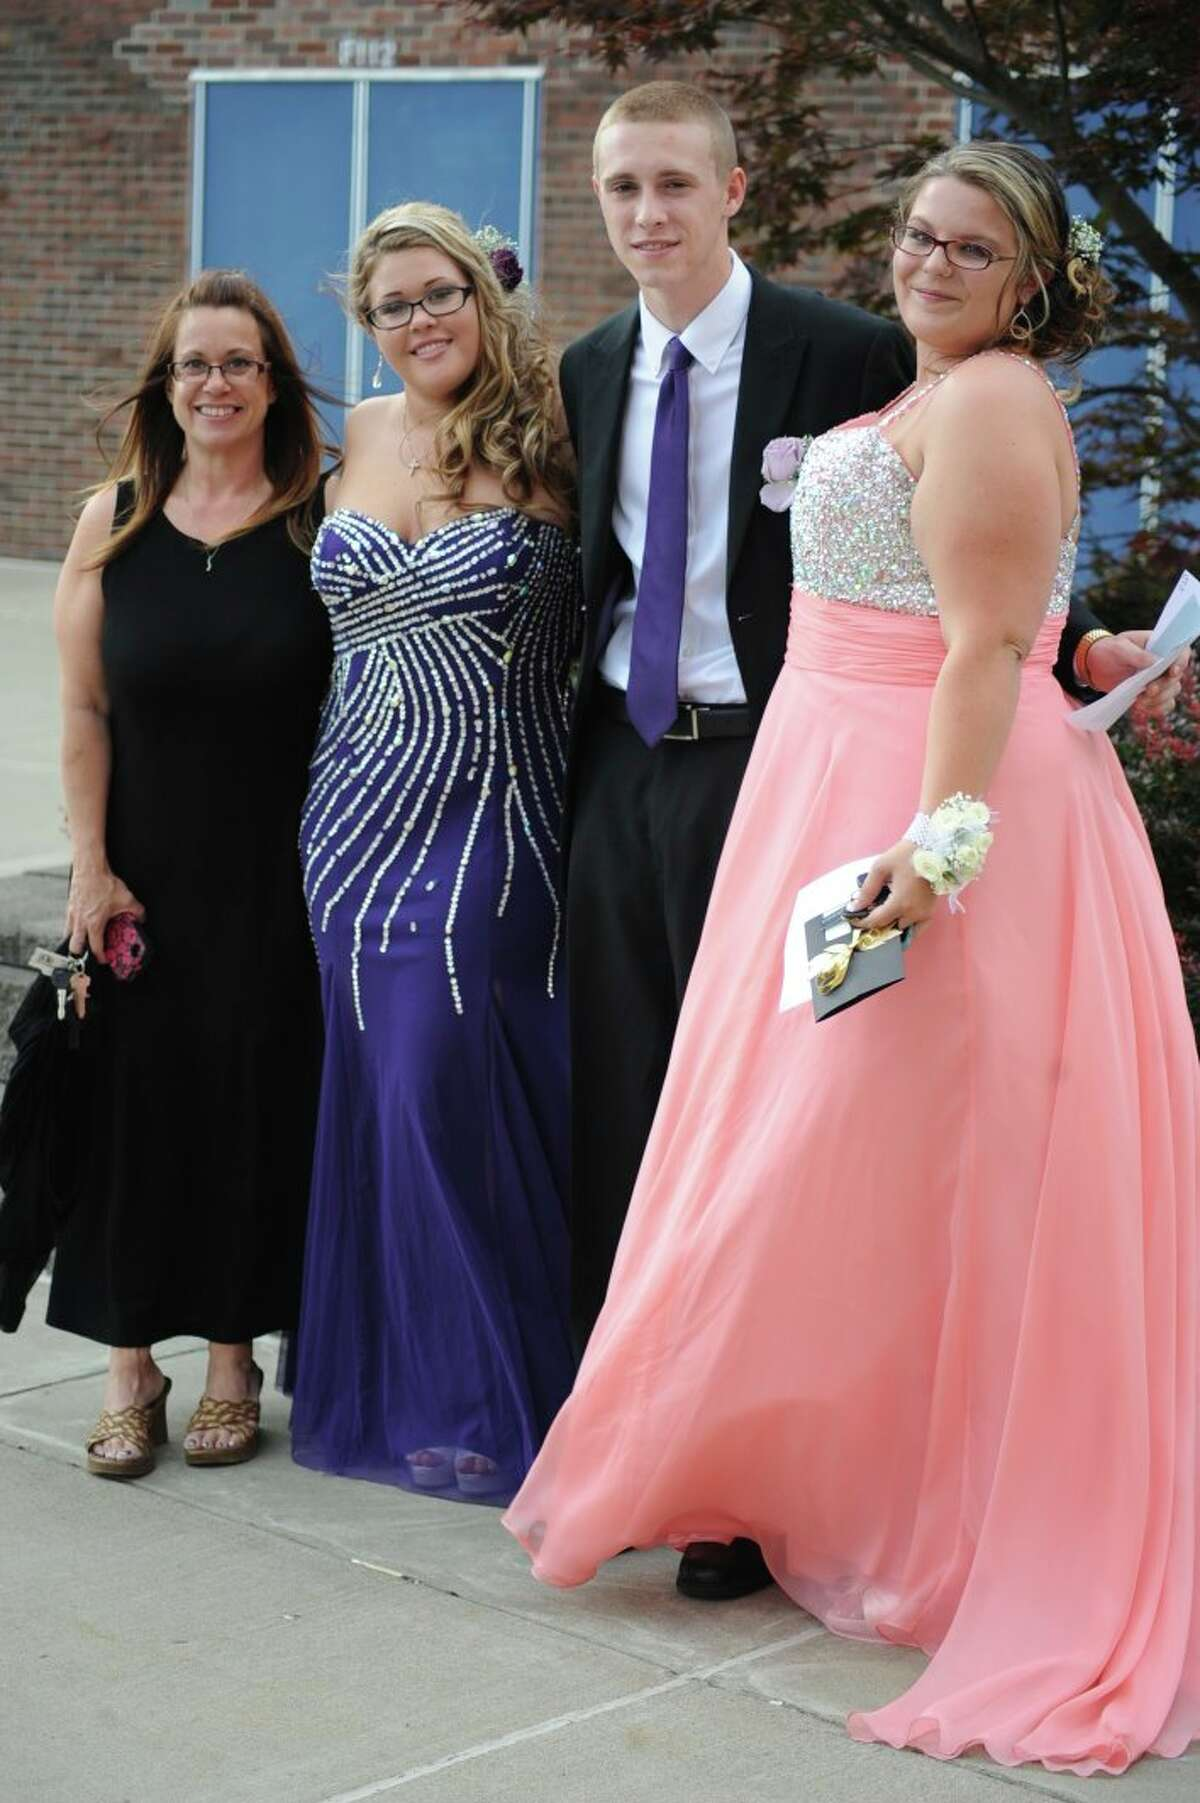 Were you Seen at the Columbia High School Senior Prom at Birch Hill in Schodack on Friday, June 6, 2014?